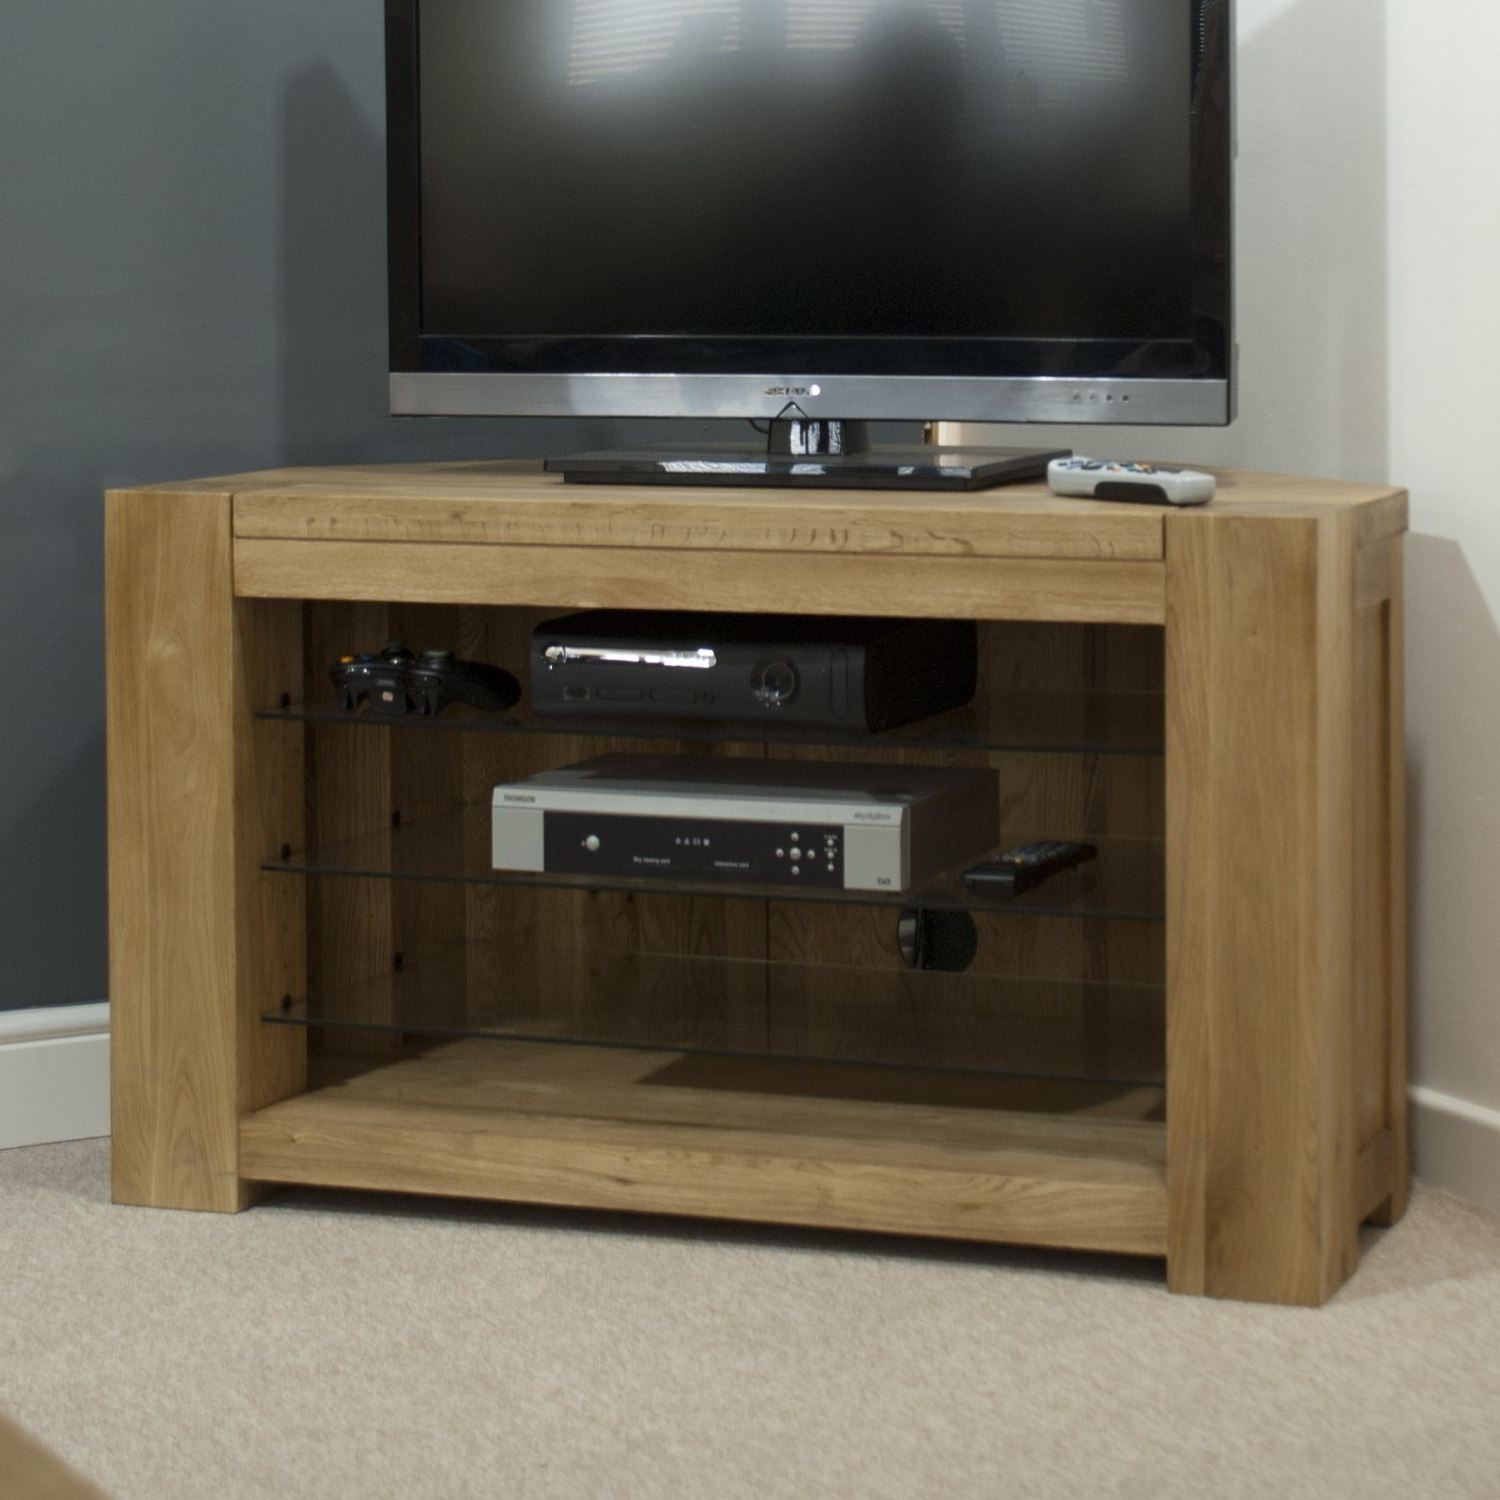 Pemberton Solid Oak Living Room Furniture Corner